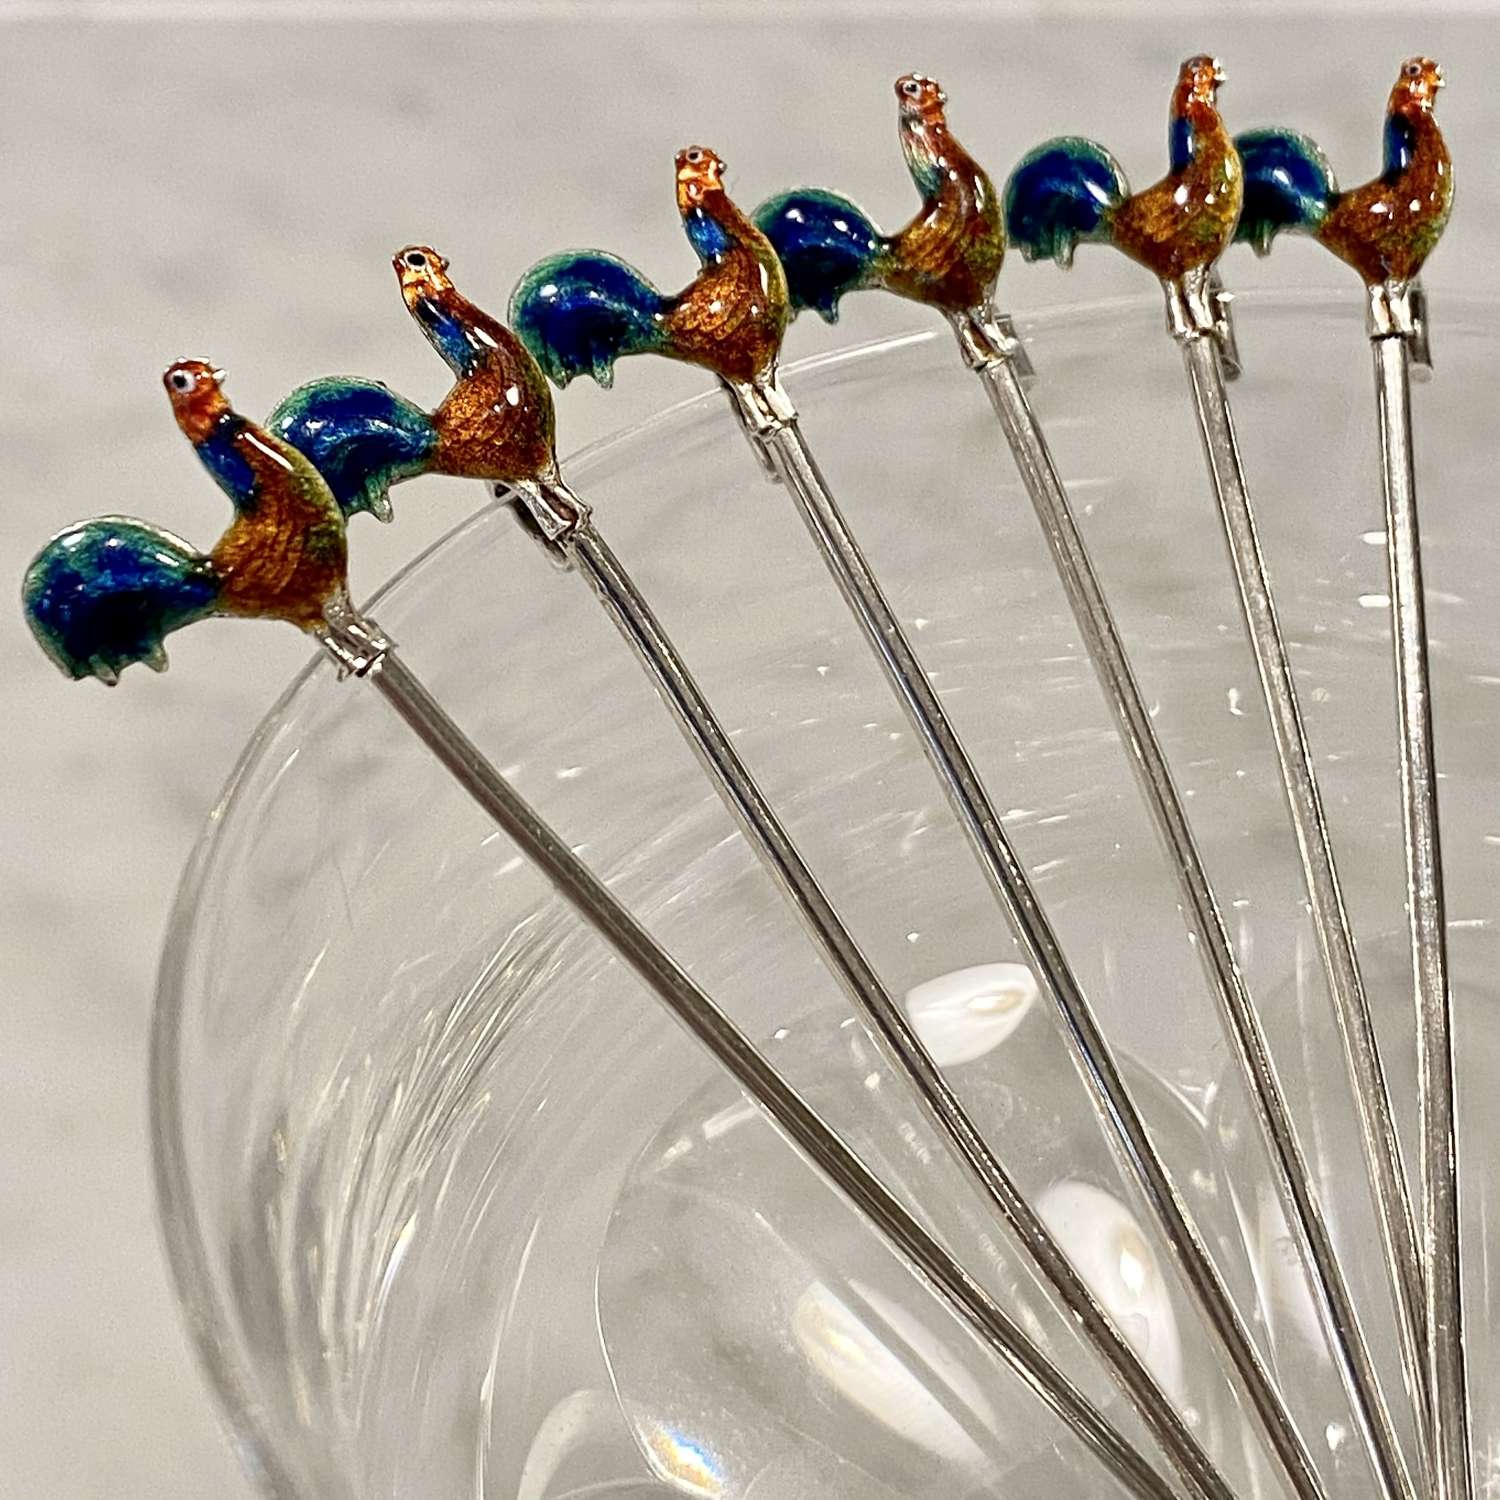 Beautifully enamelled silver cockerel cocktail sticks